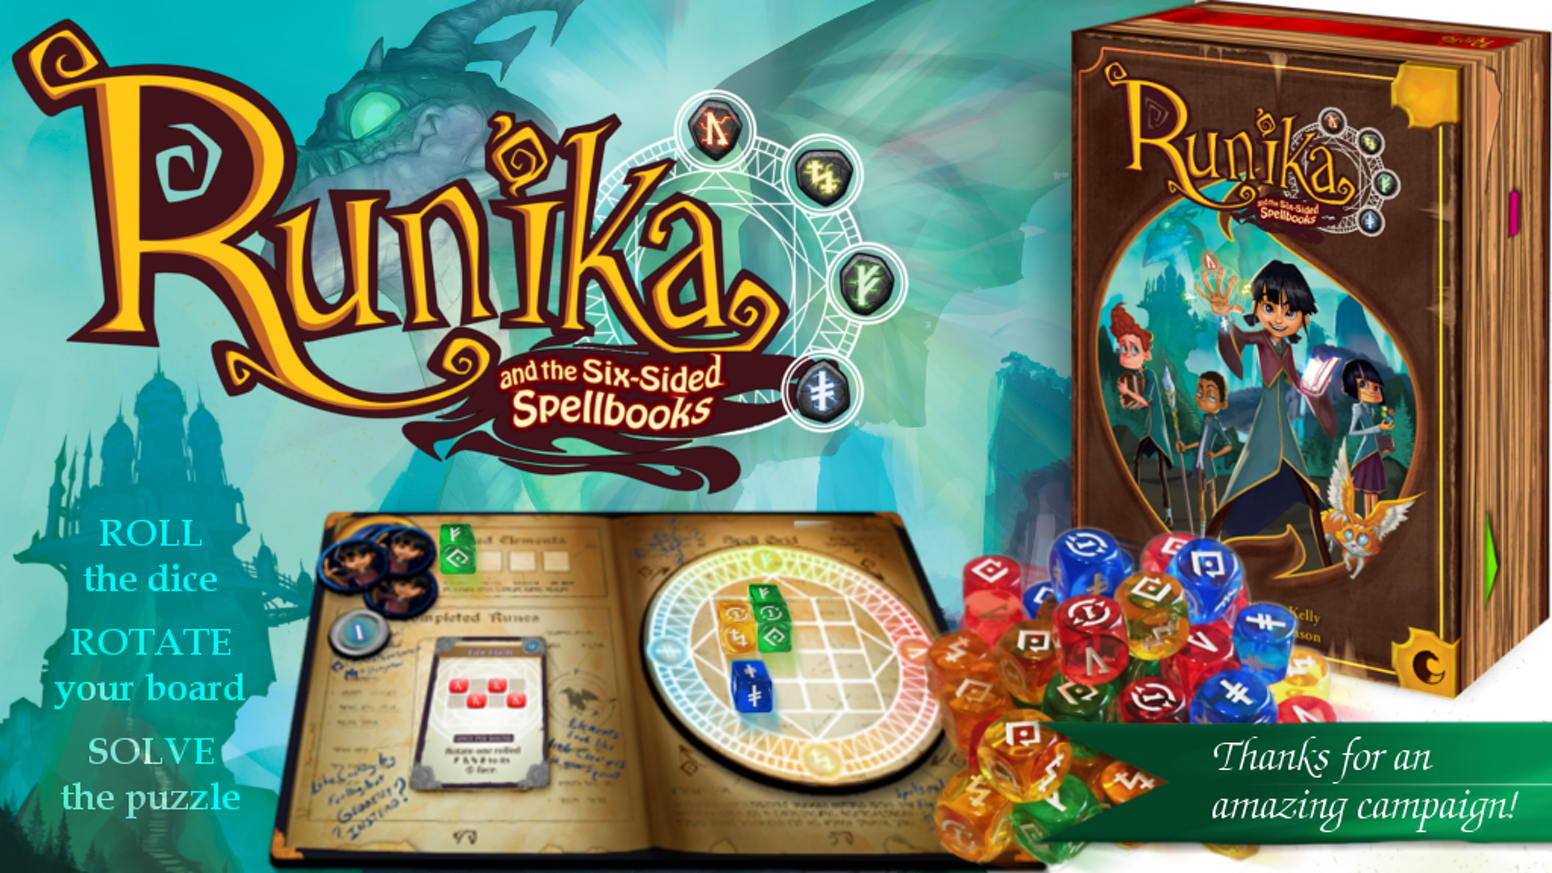 A 1-4 player fantasy puzzle game with 80 dice and rotating boards. Roll dice, solve puzzles, create your runes and cast your spells!